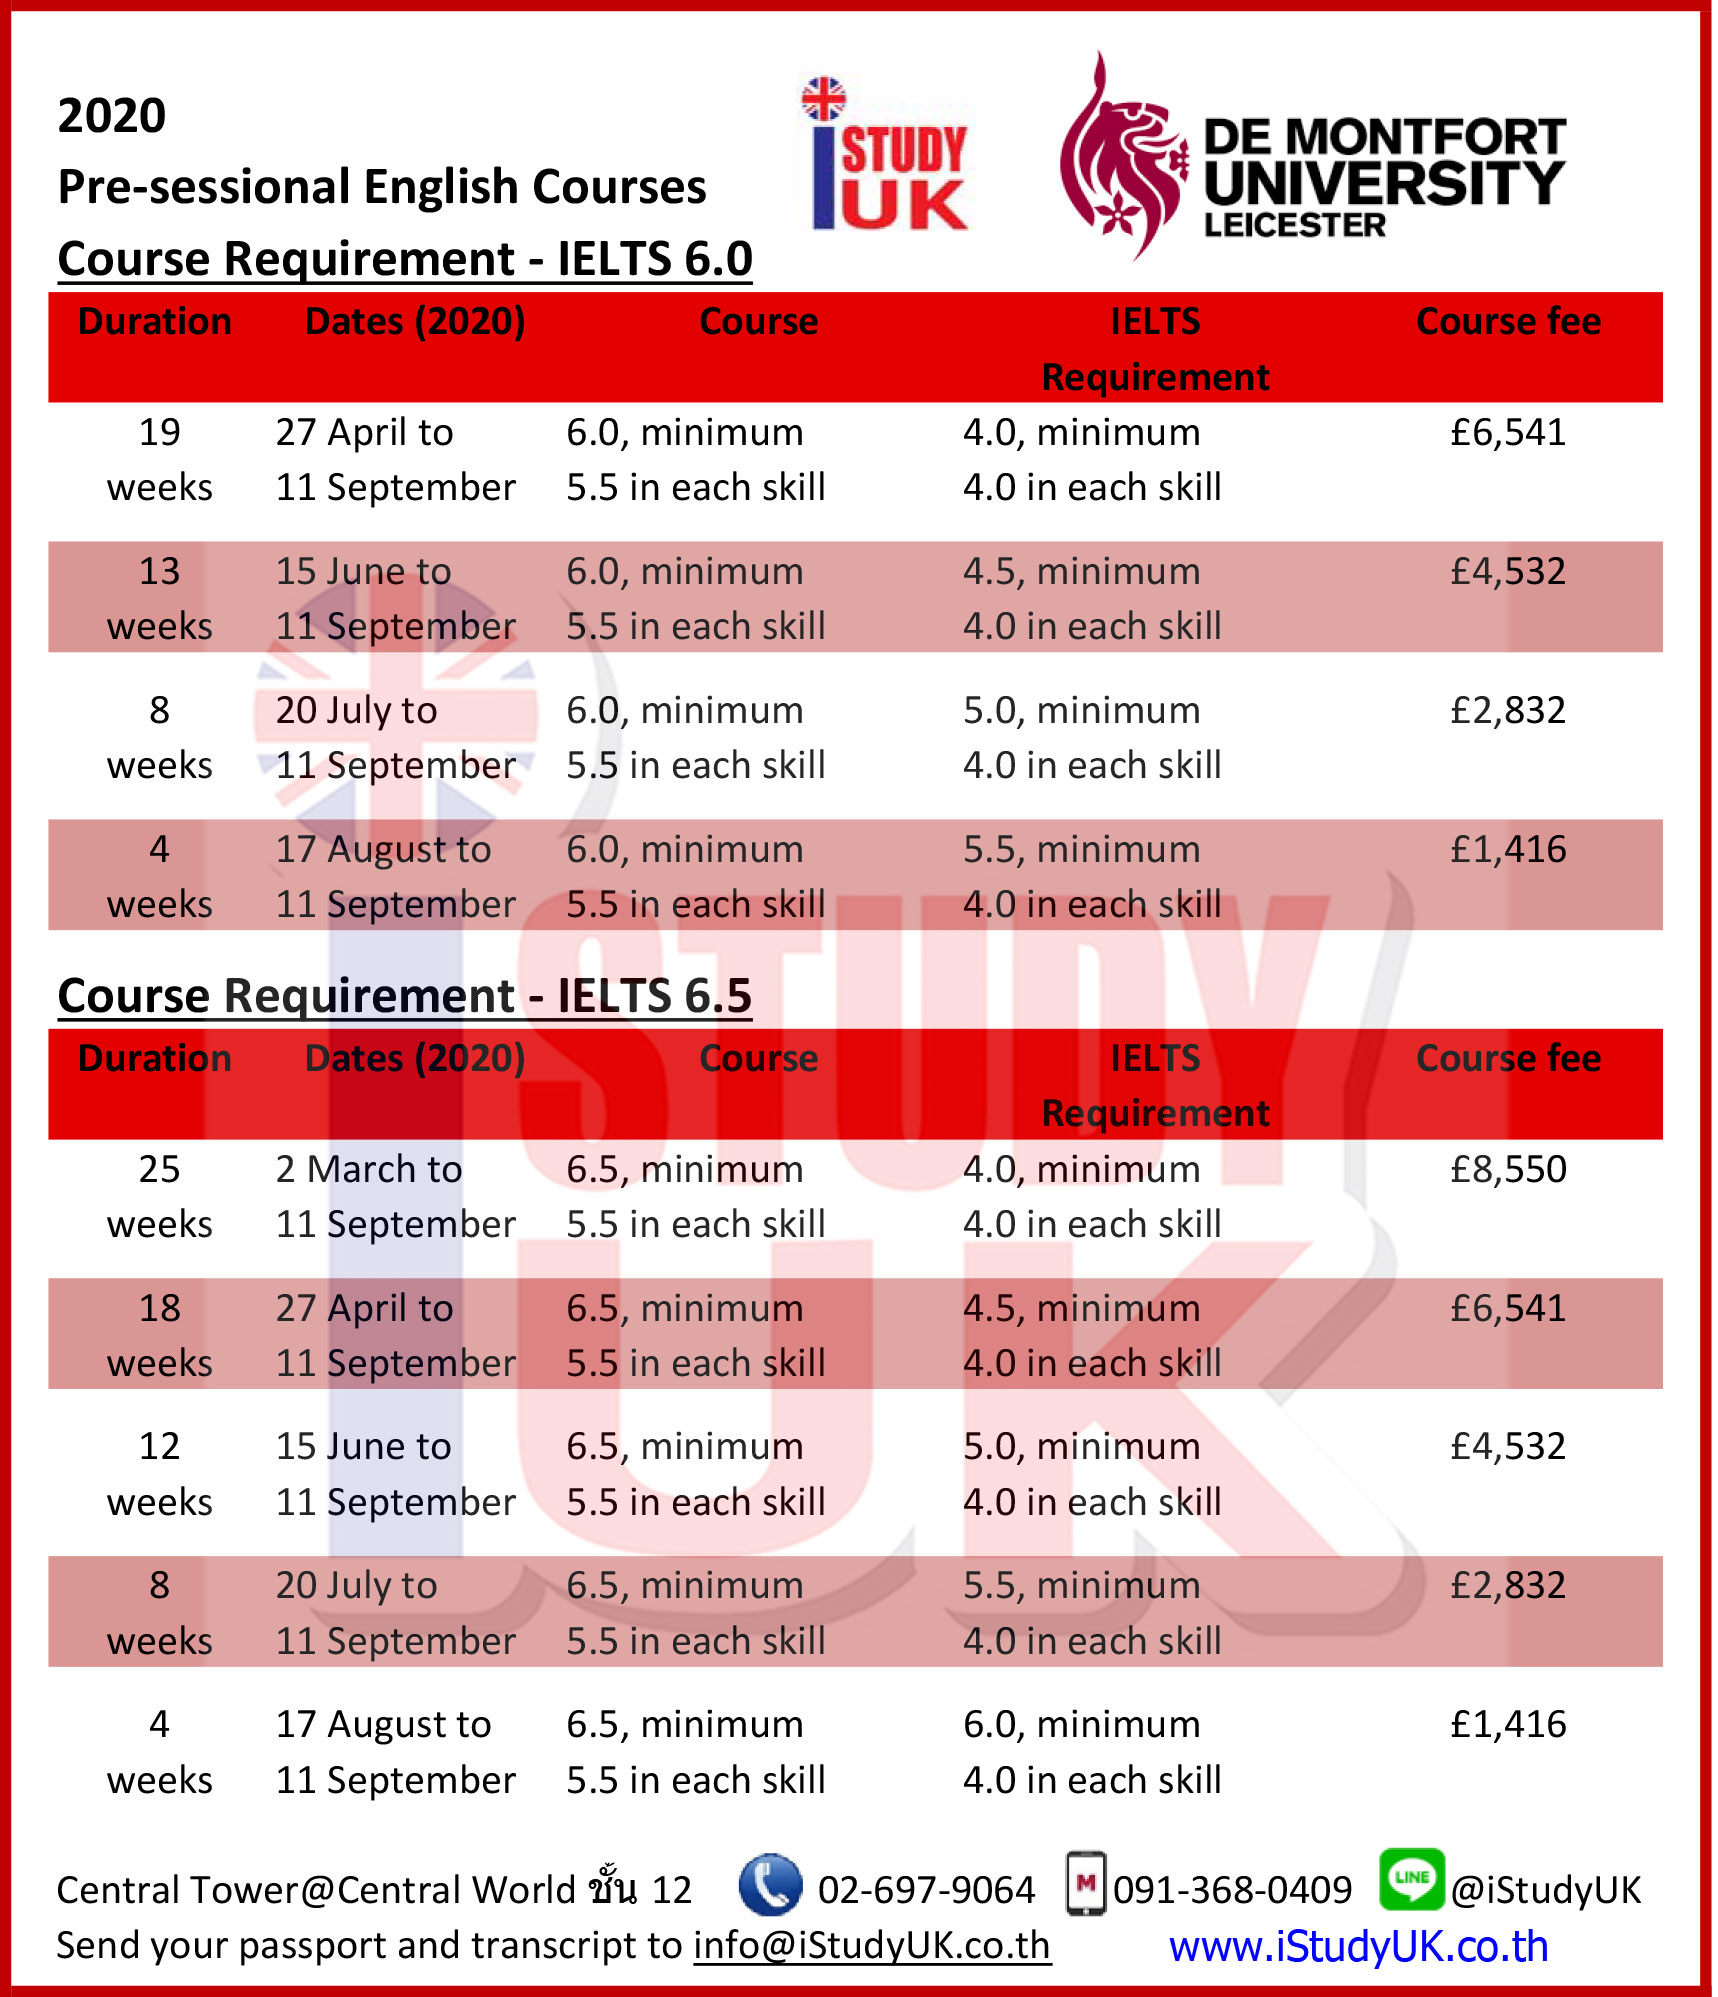 สมัครเรียนต่อปริญญาโทประเทศอังกฤษ DeMontfort University DMU Leicester UK - demontfort-university-dmu-pre-sessional-english-course-fee-dates-2020